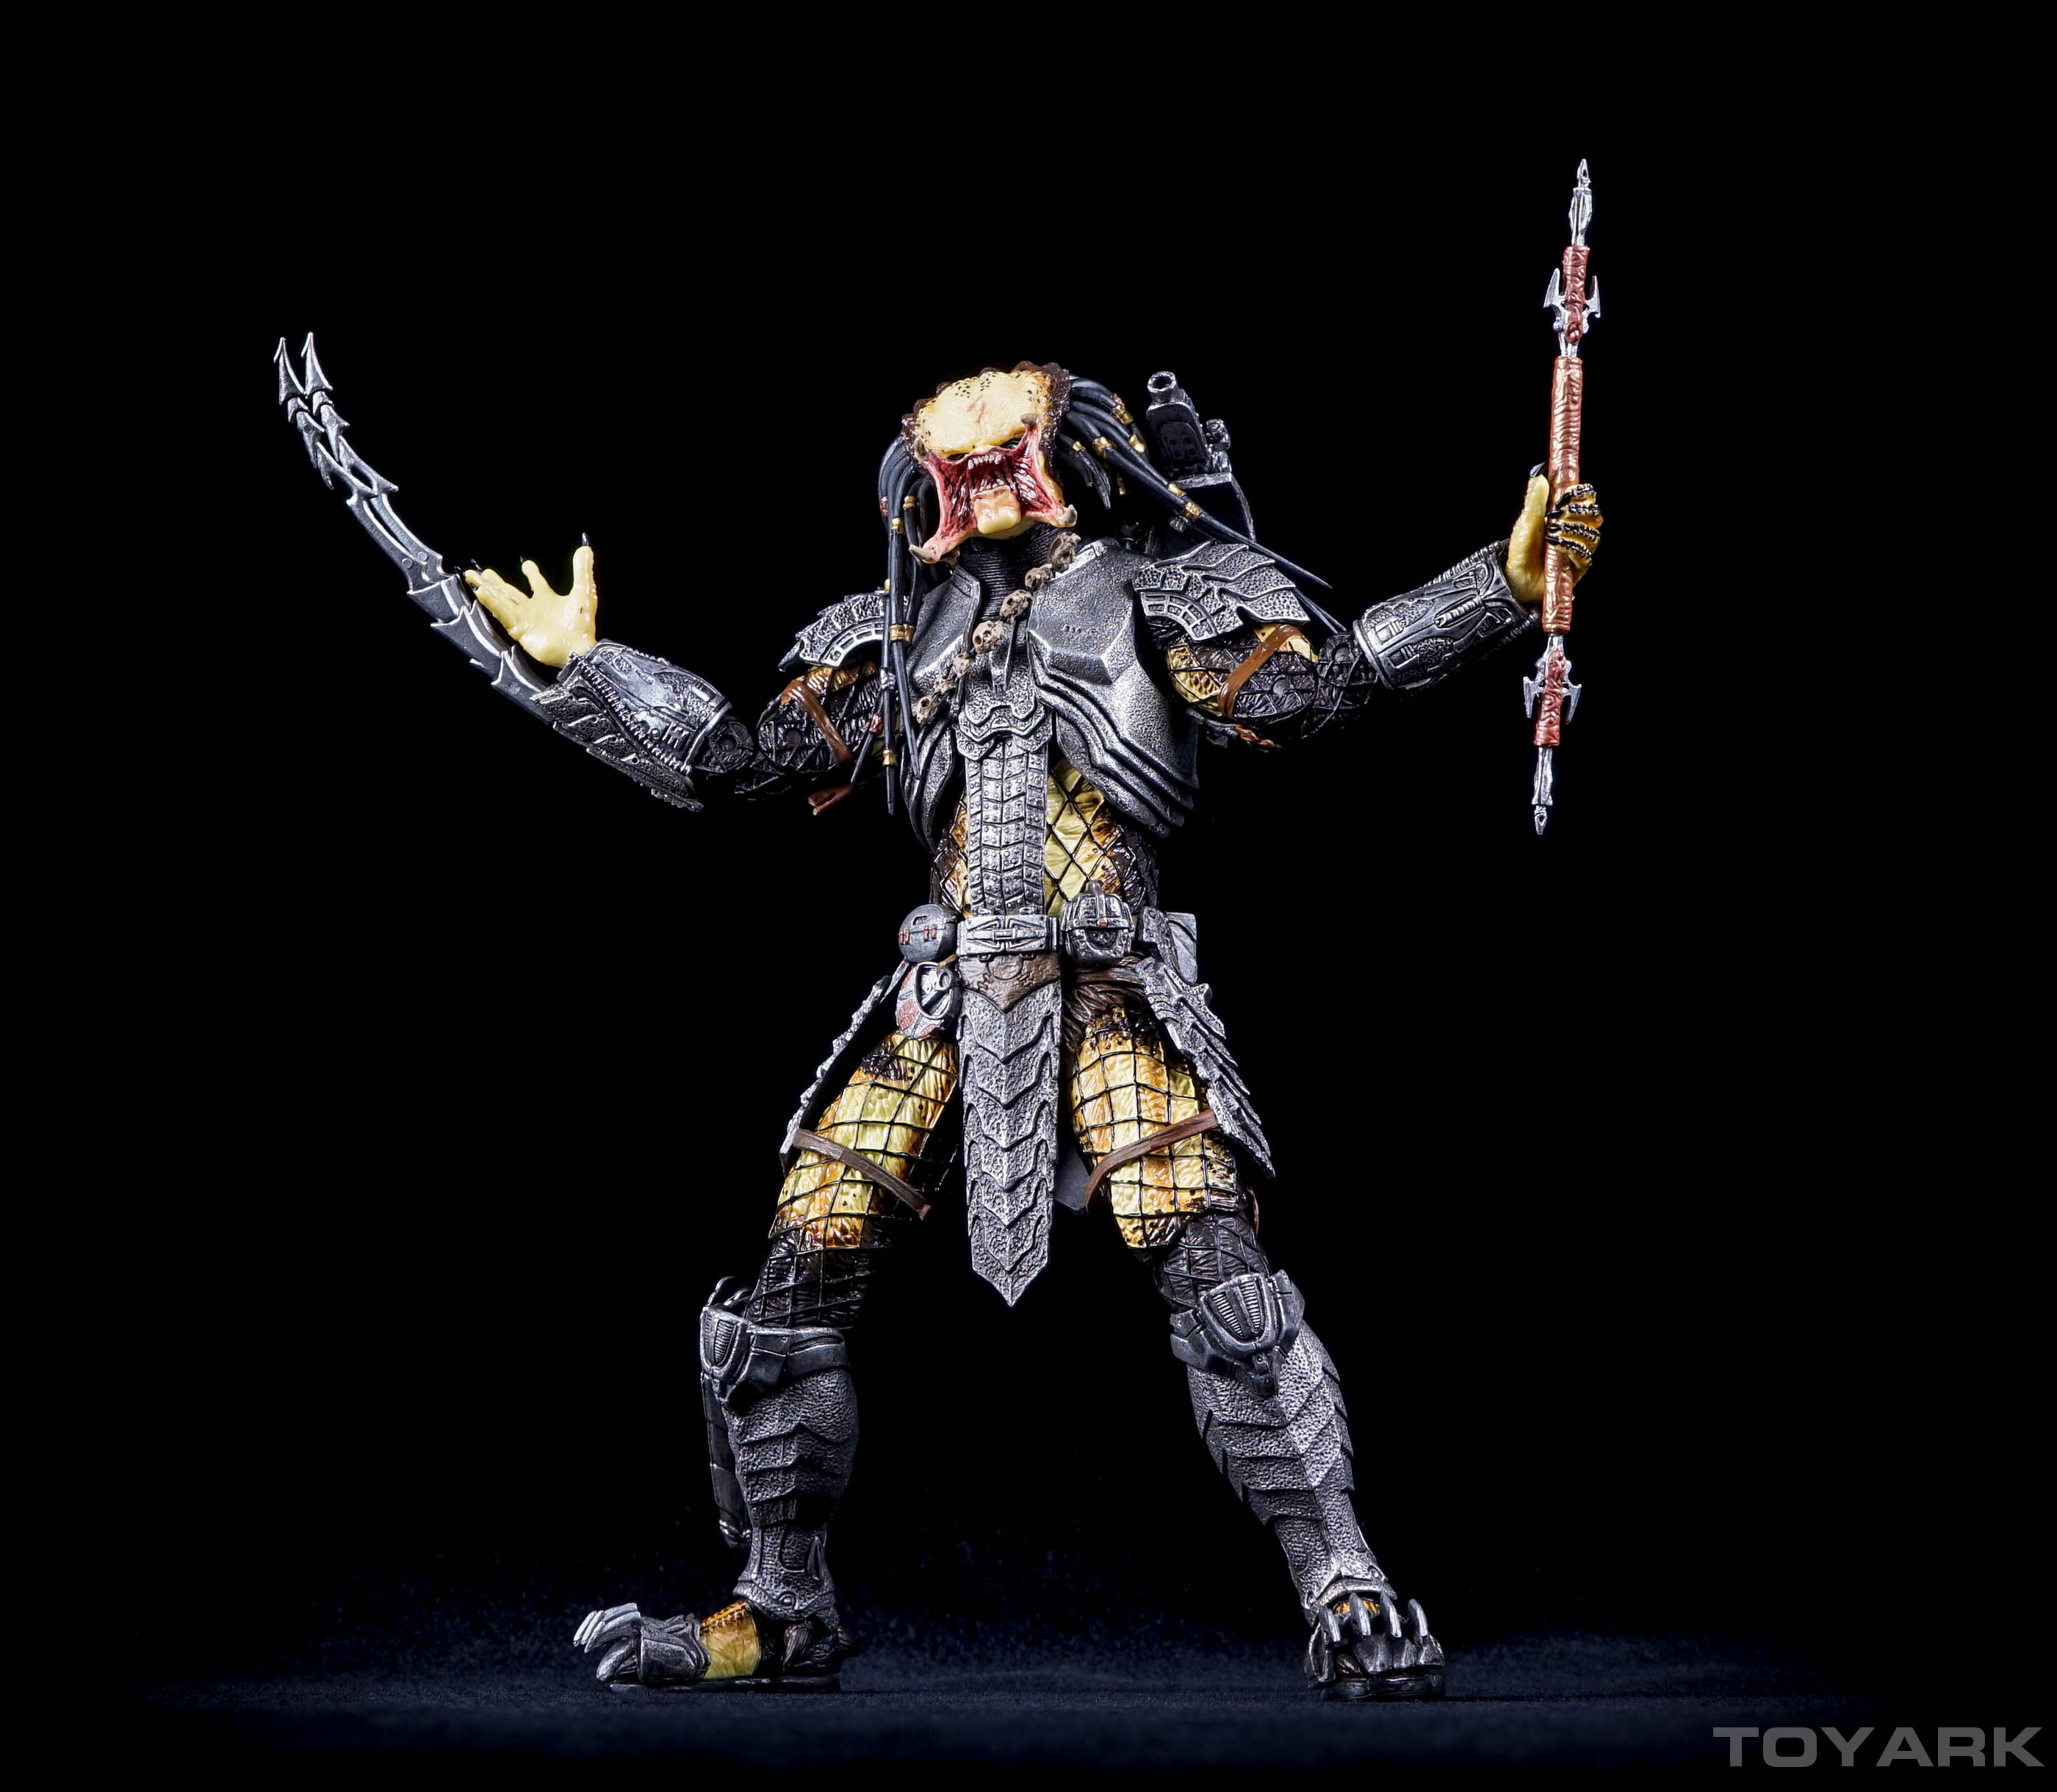 http://news.toyark.com/wp-content/uploads/sites/4/2015/12/NECA-AvP-Scar-Predator-015.jpg